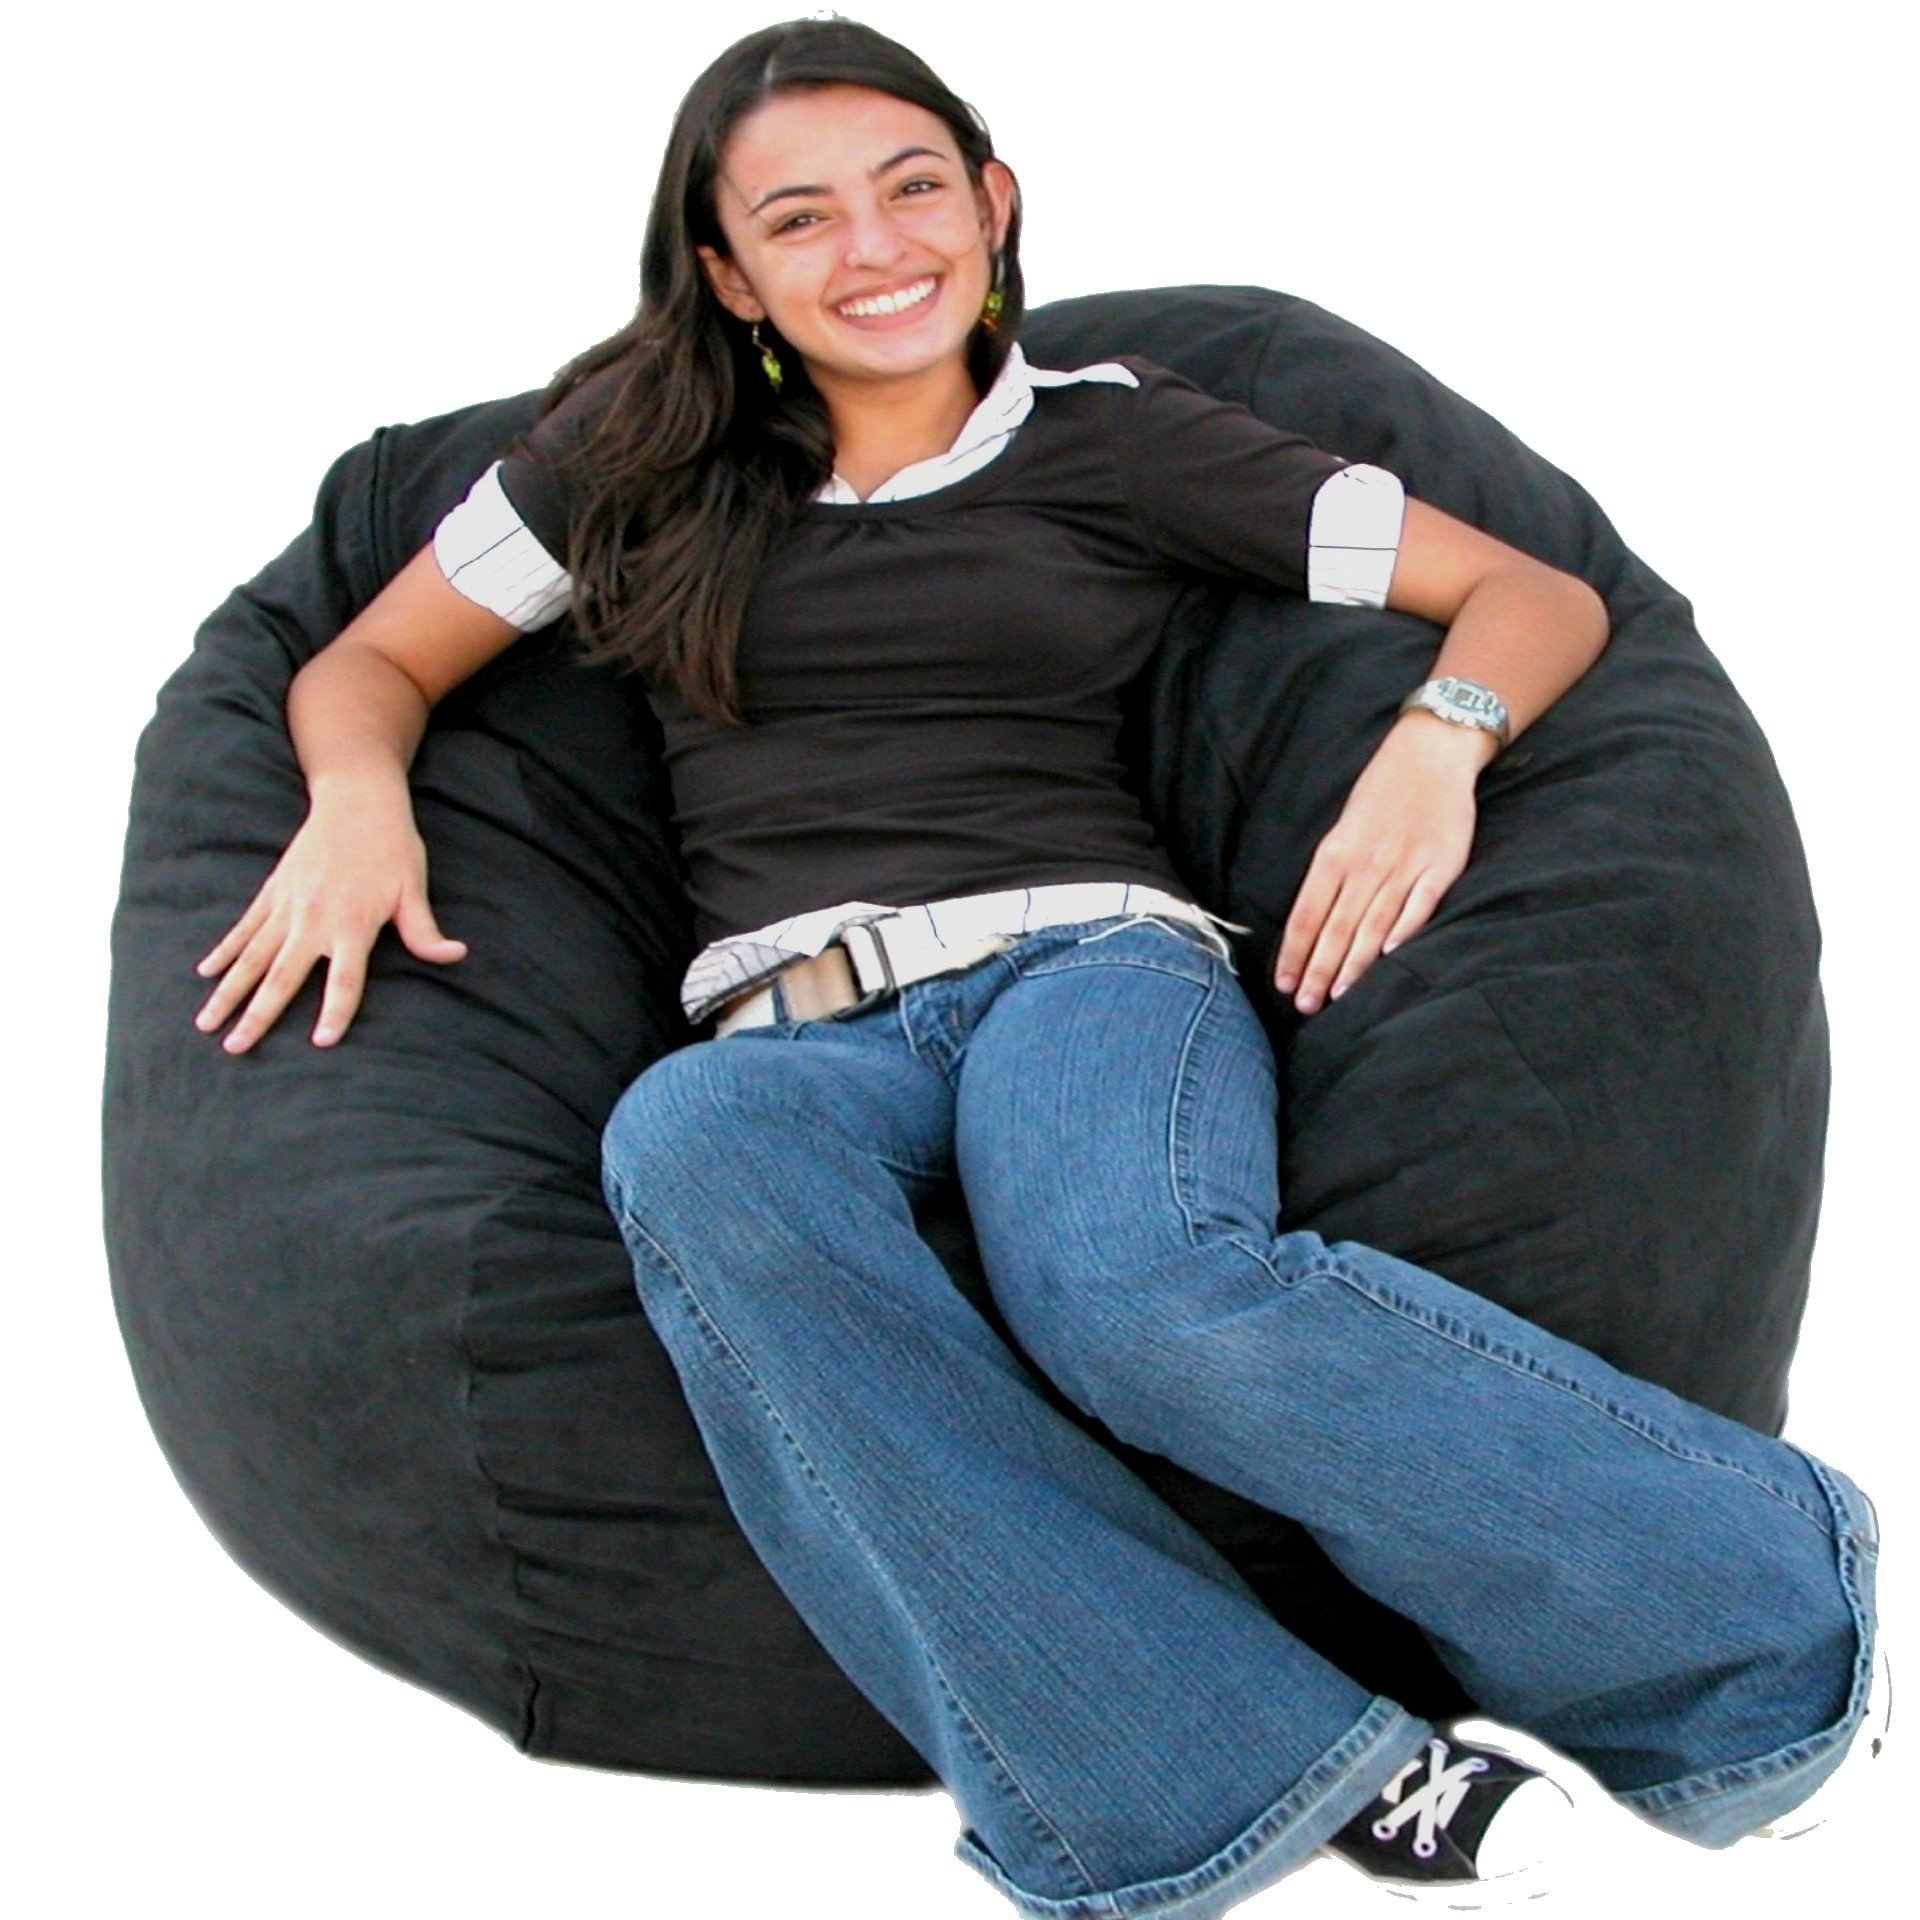 Cozy Sack 3-Feet Bean Bag Chair, Medium, Black